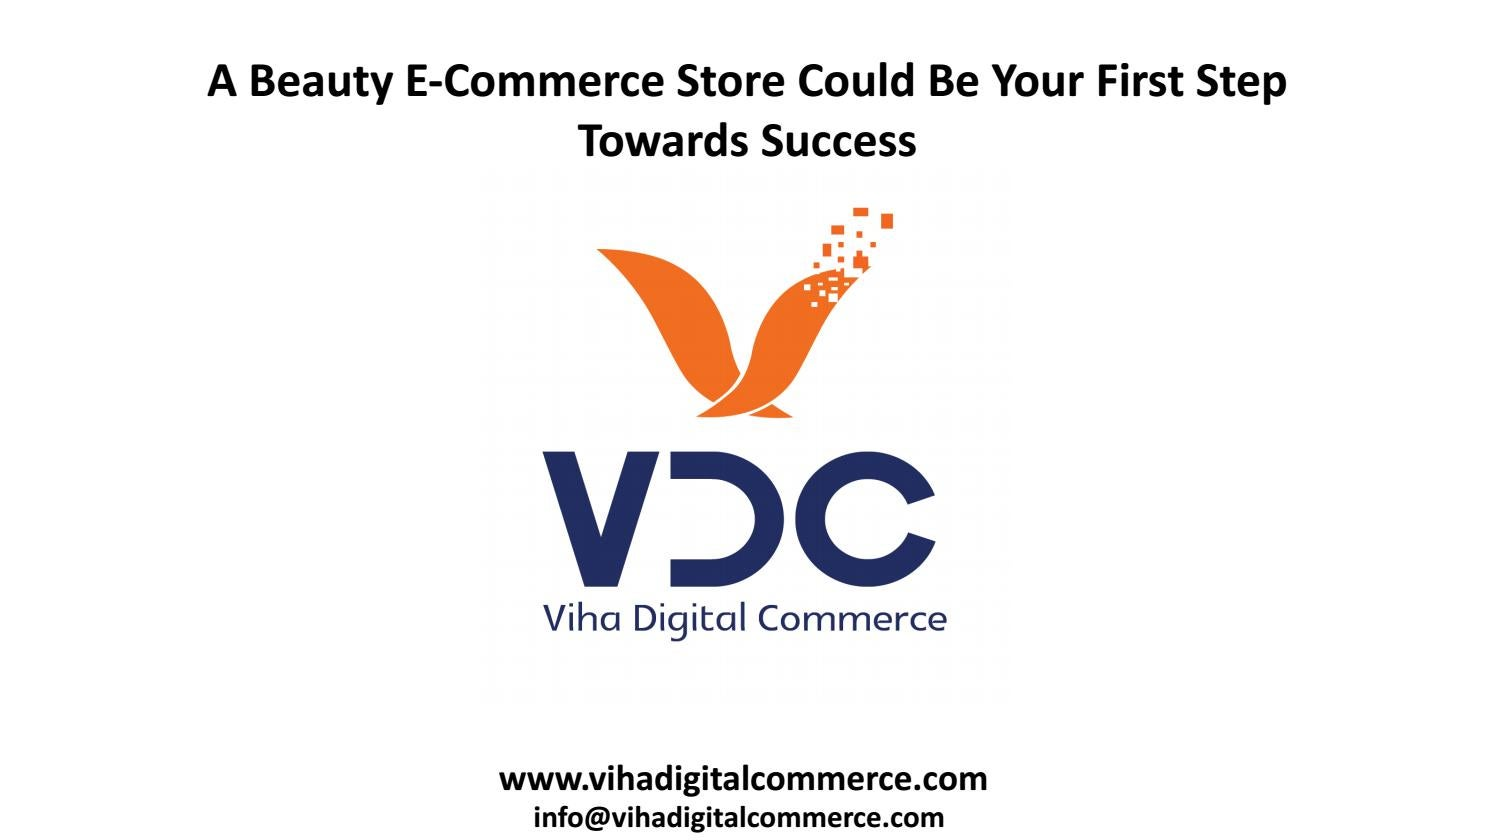 A Beauty E-Commerce Store Could Be Your First Step Towards